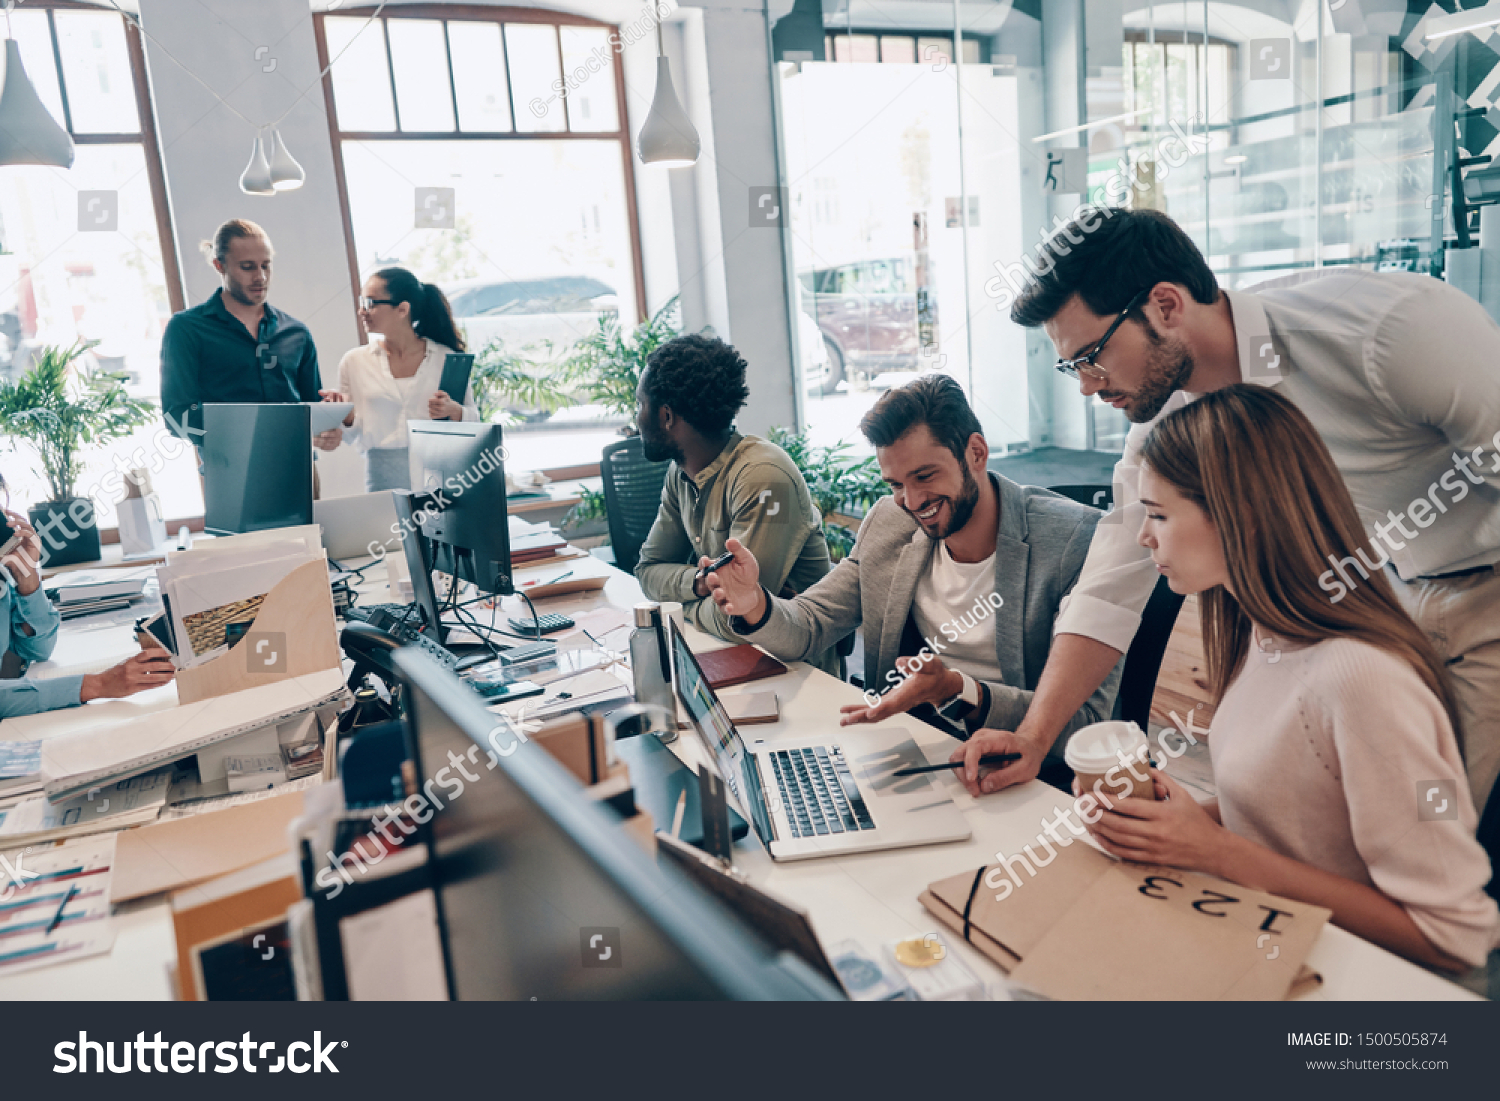 Group of young modern people in smart casual wear communicating and using modern technologies while working in the office              #1500505874